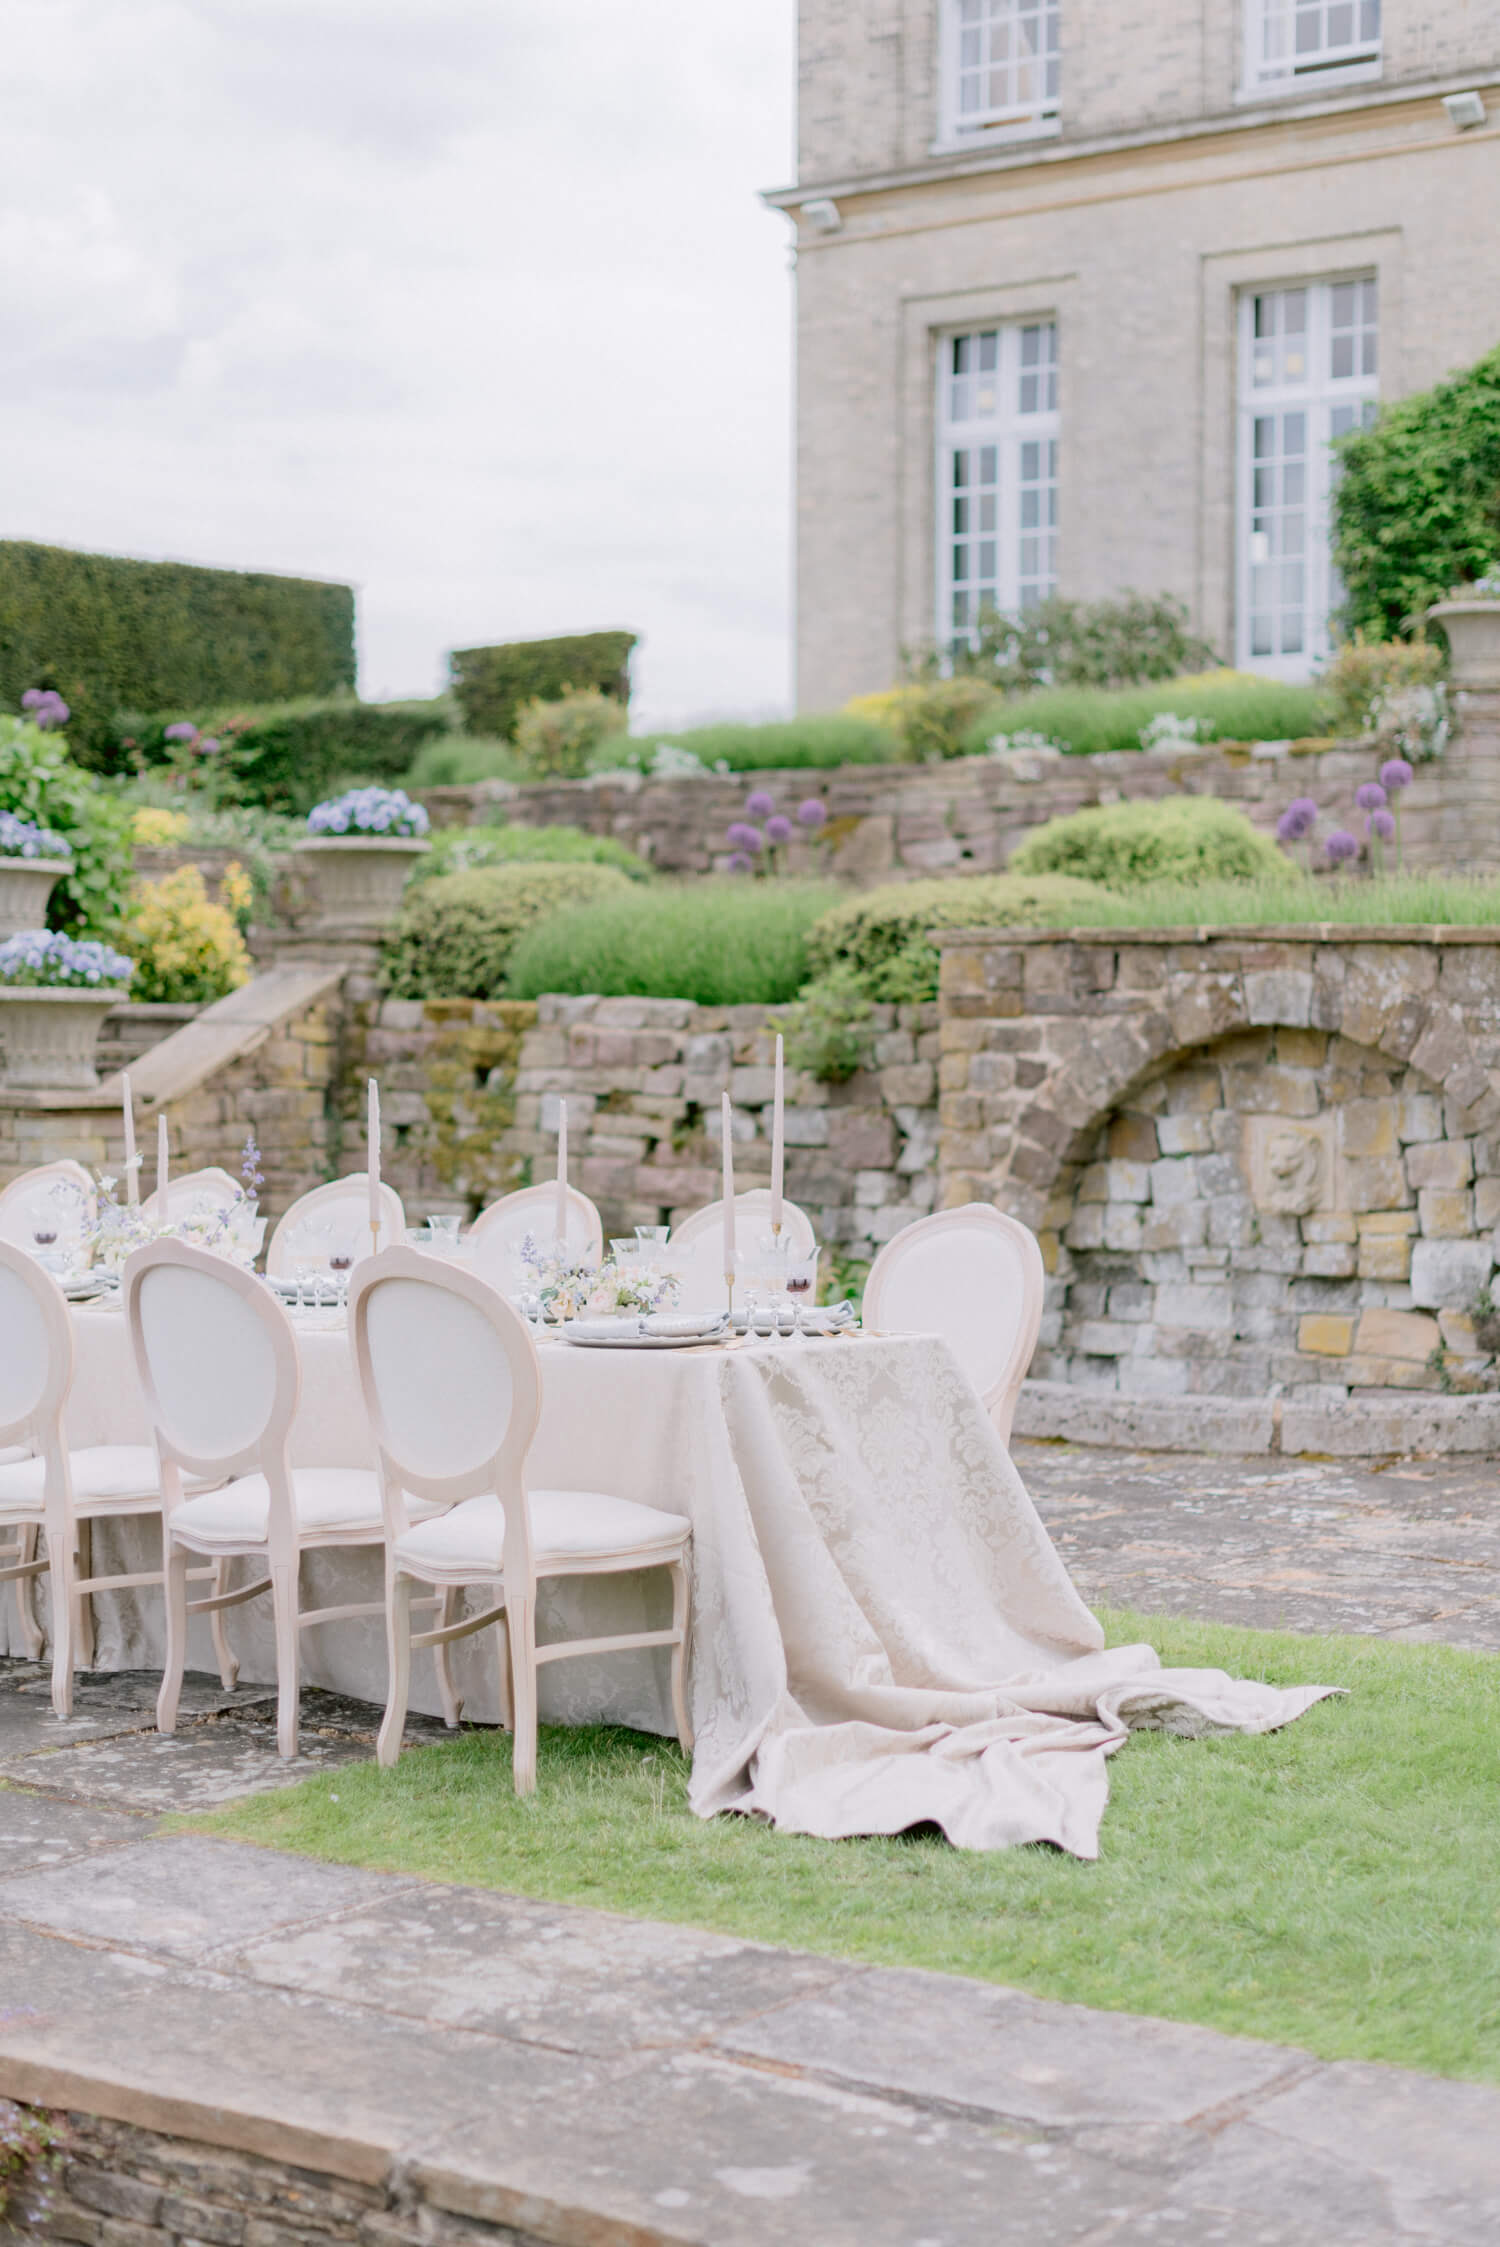 Classic English garden wedding setup. In Photo: natural wood French style antique chair with ivory cushions, crystal goblets, brass candlestick holders, tapered candles and luxury beige table cloth. Styling by Elizabeth Gopal of East Made Co. Photography by Cristina Ilao www.cristinailao.com